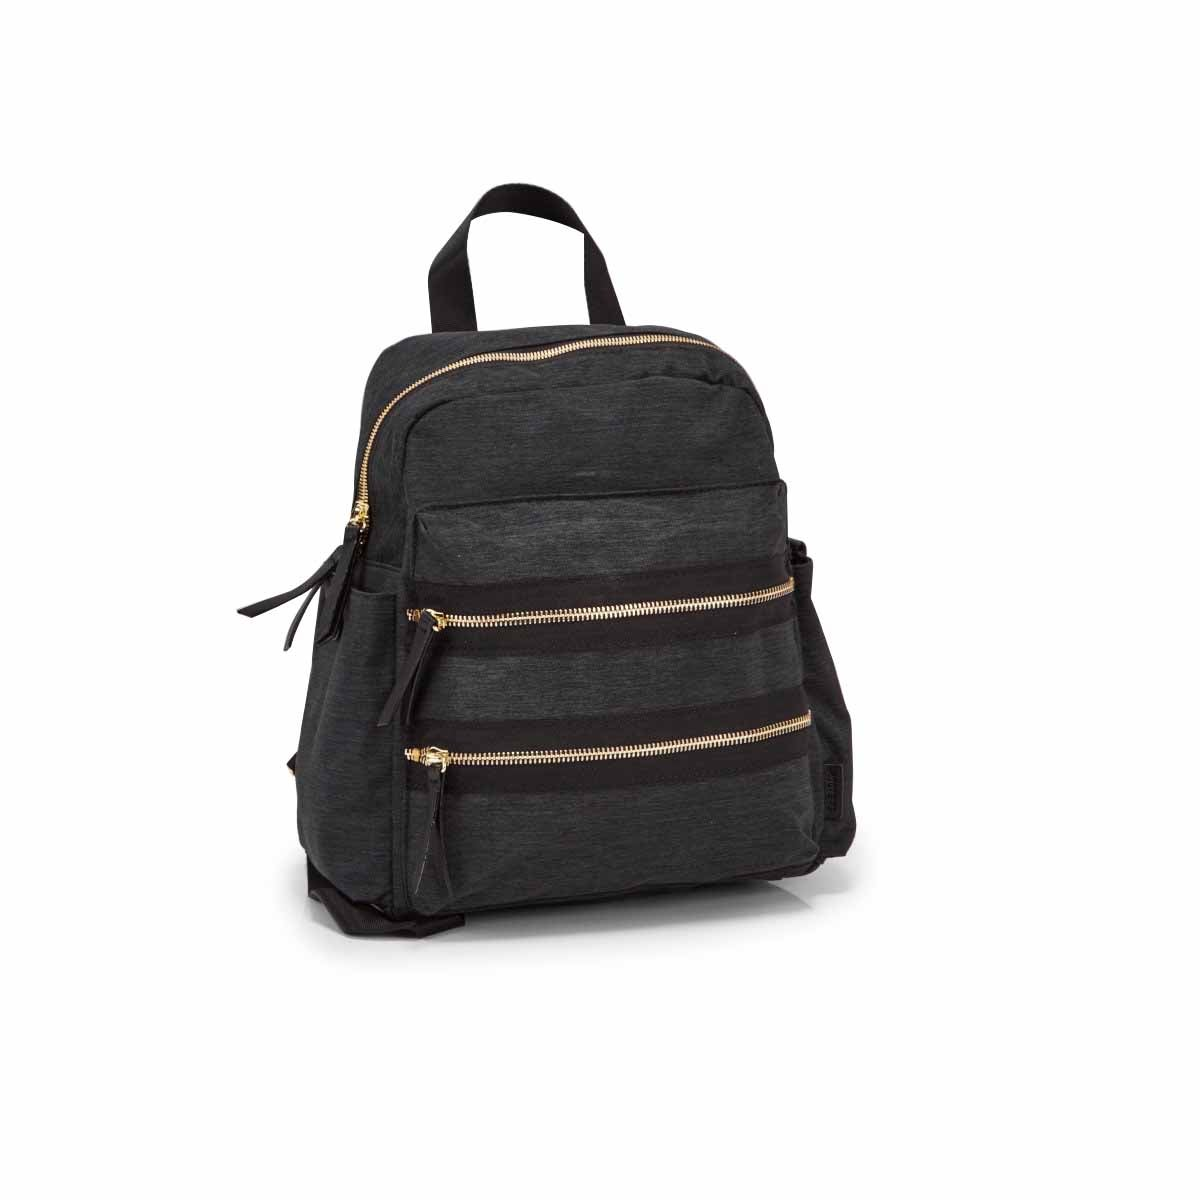 Lds Roots73 blk double zip mini backpack